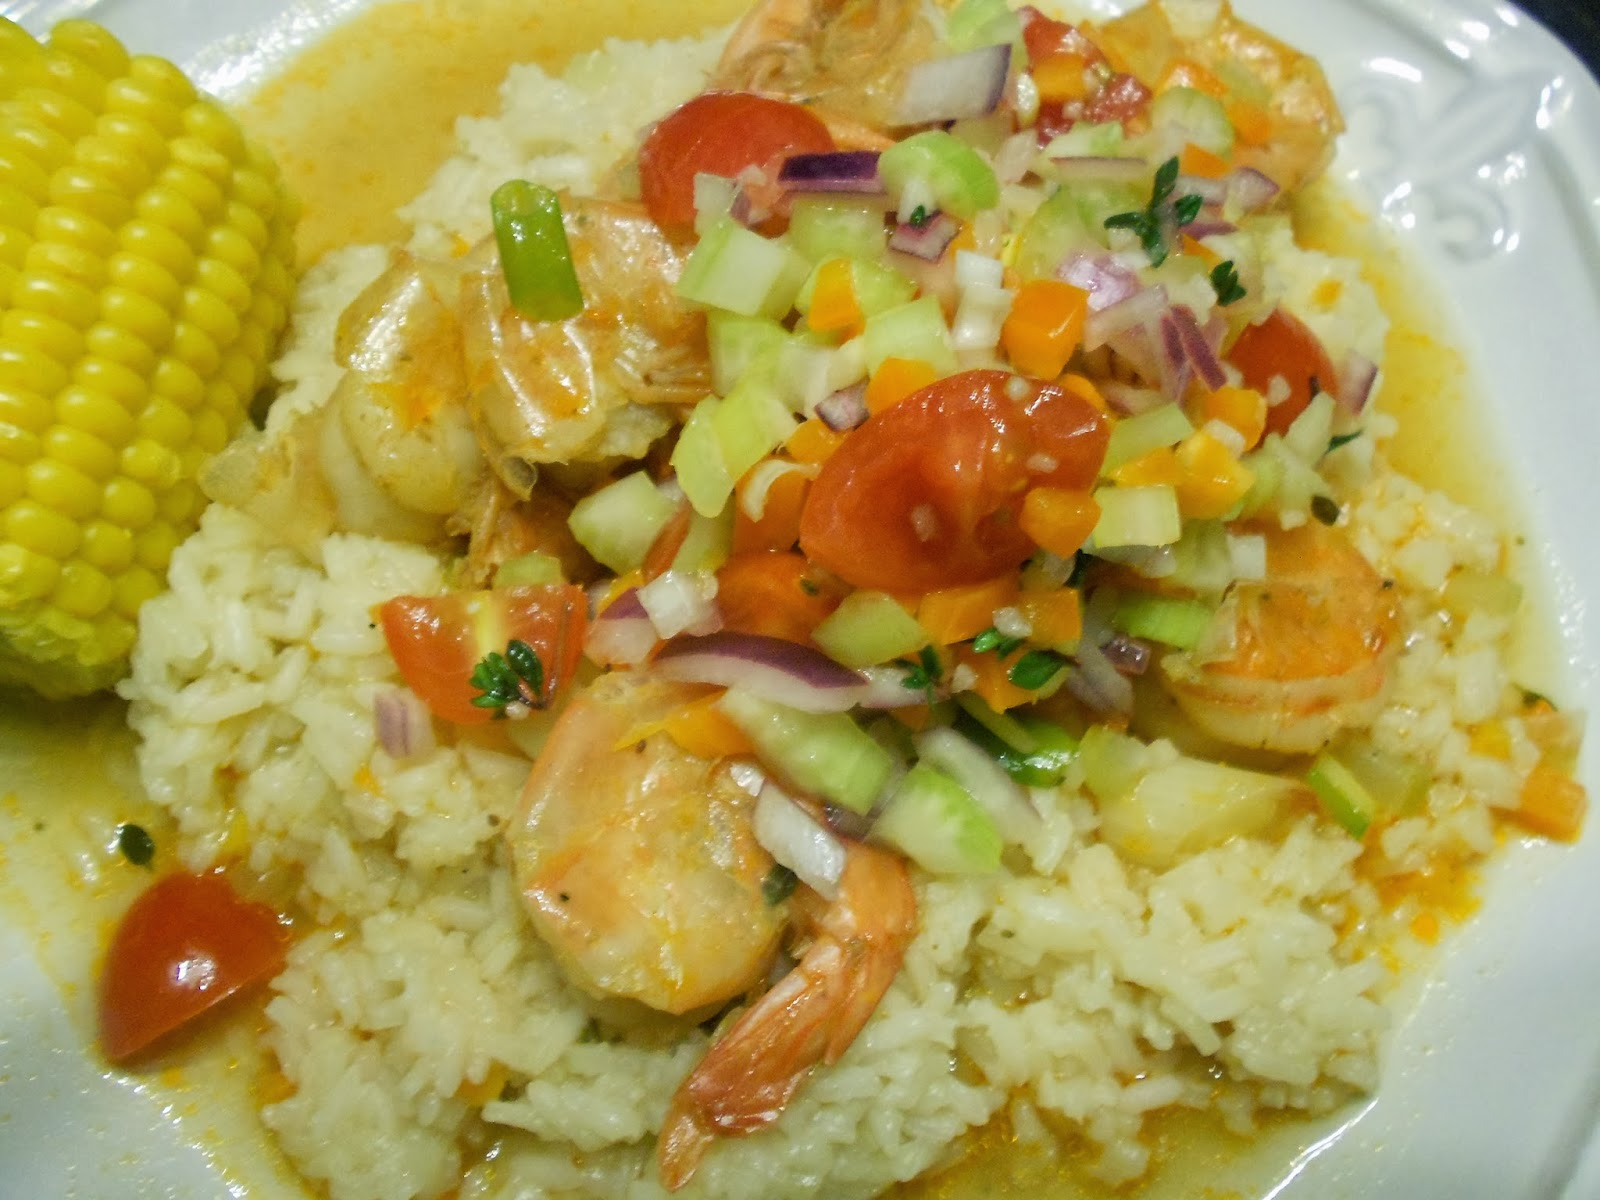 beer-braised shrimp with louisiana salsa and rice